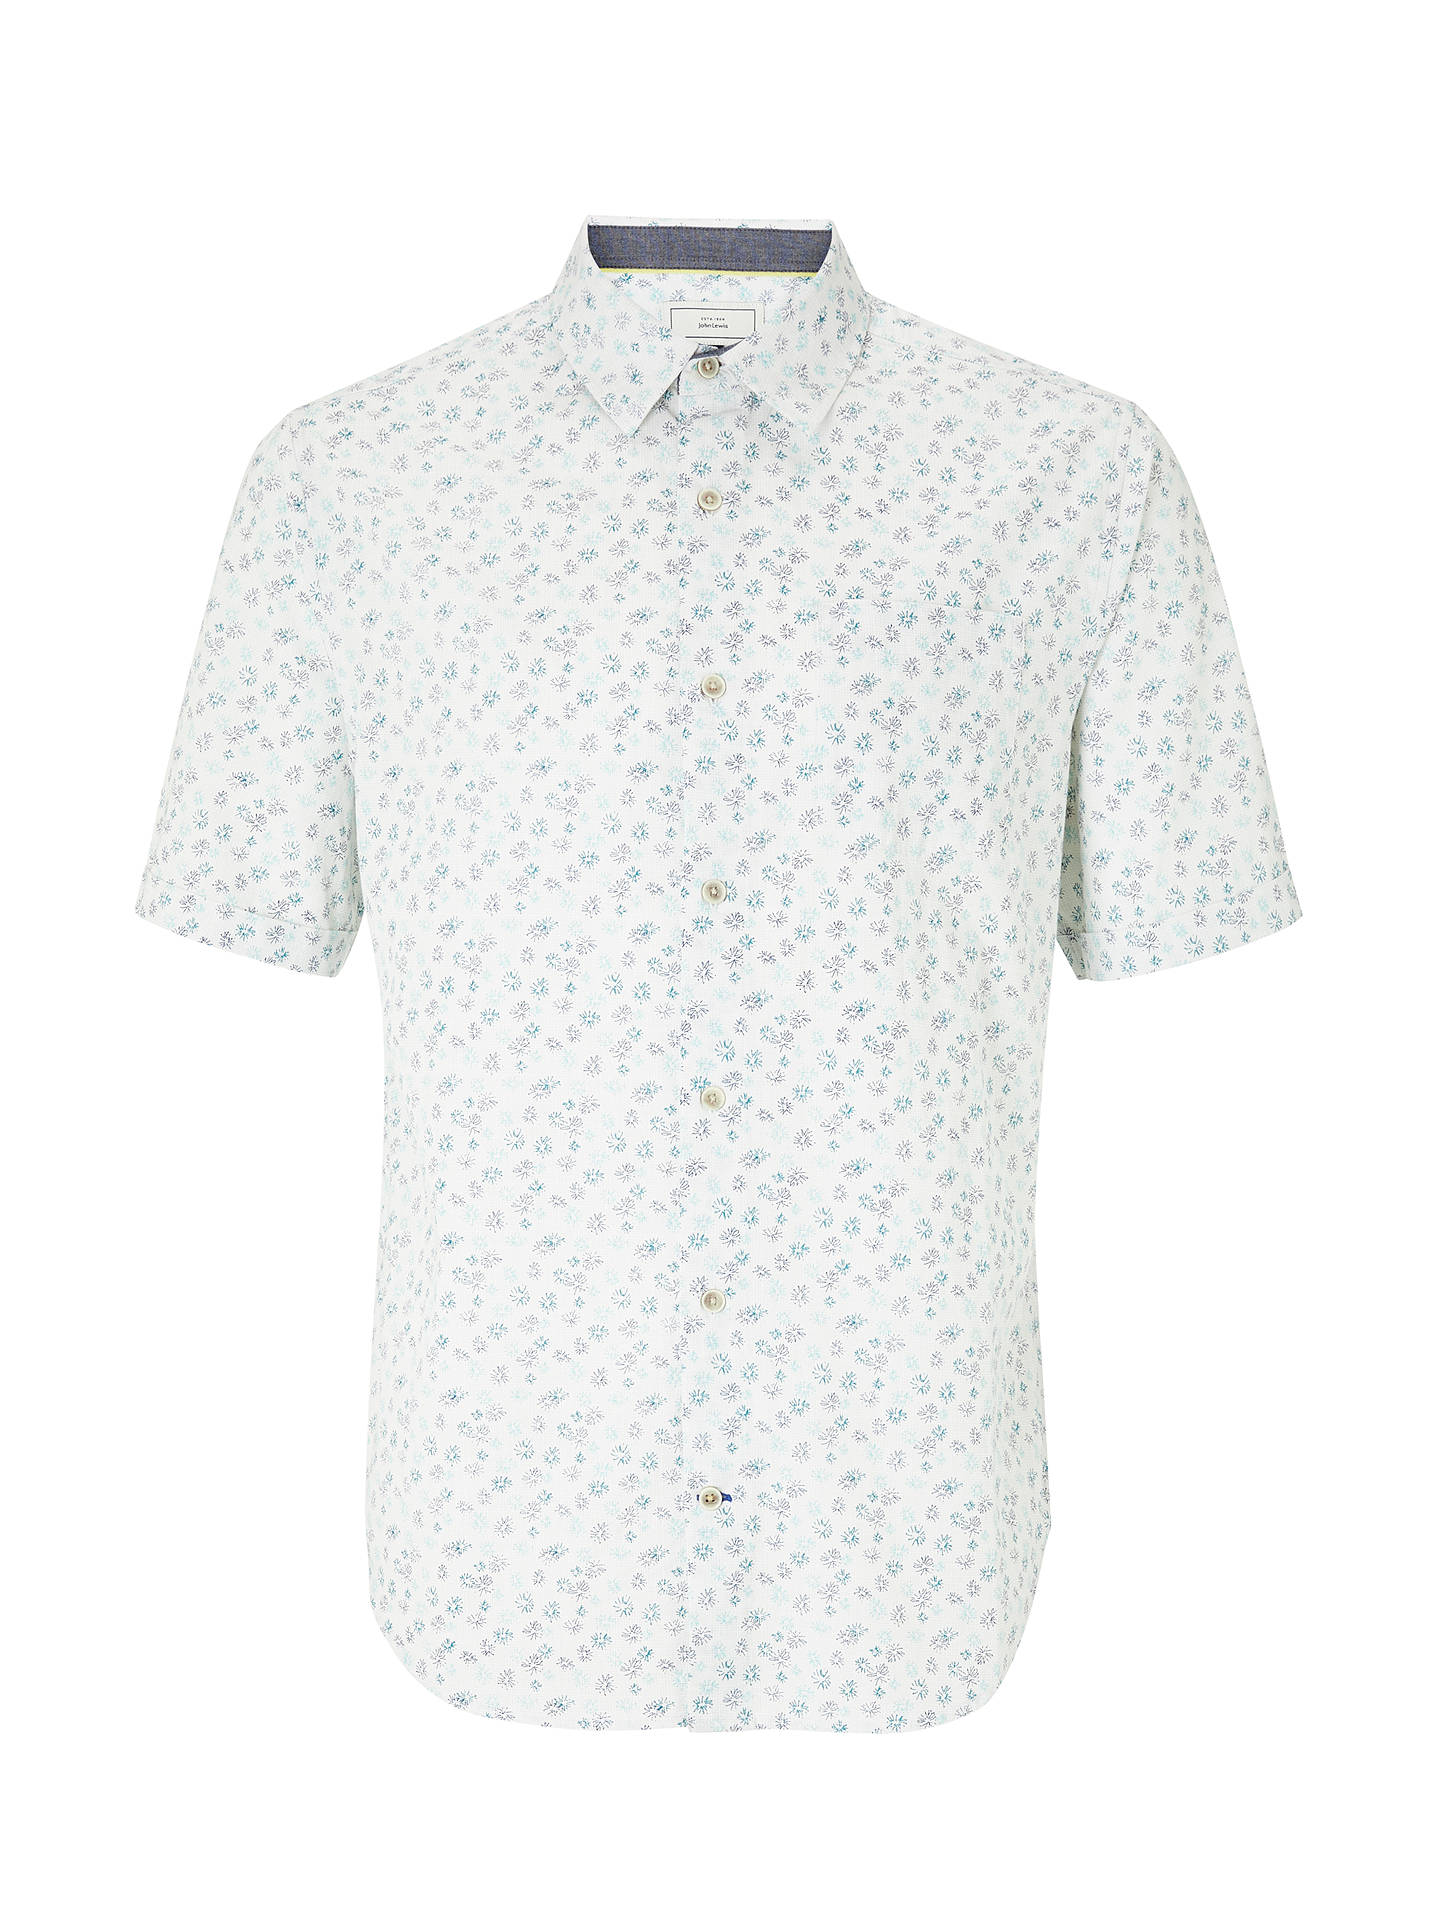 Buy John Lewis & Partners Orchid Print Short Sleeve Shirt, White, S Online at johnlewis.com